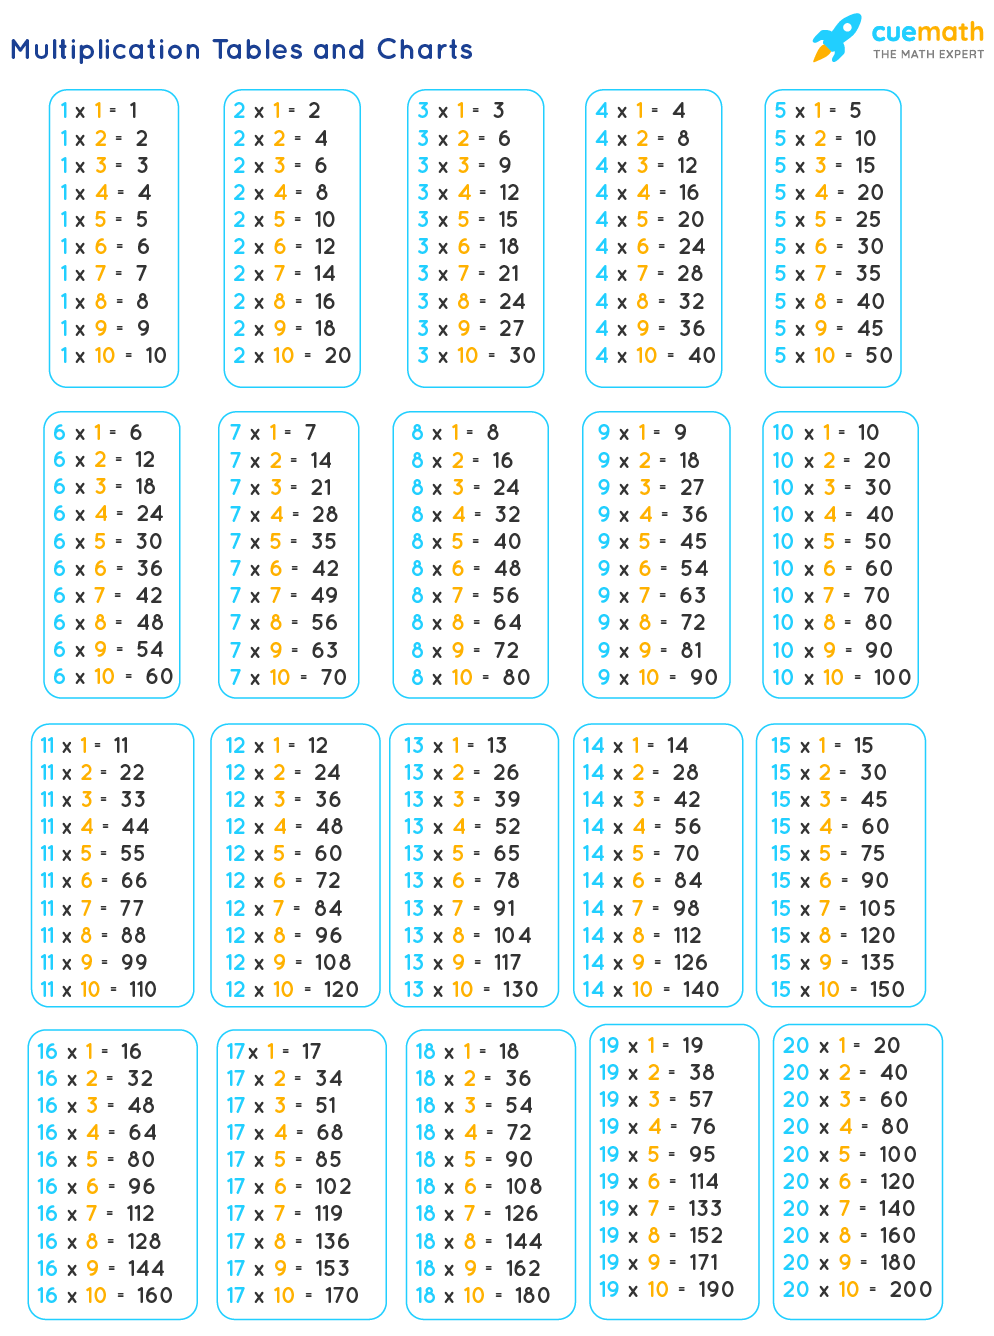 tables 1 to 20